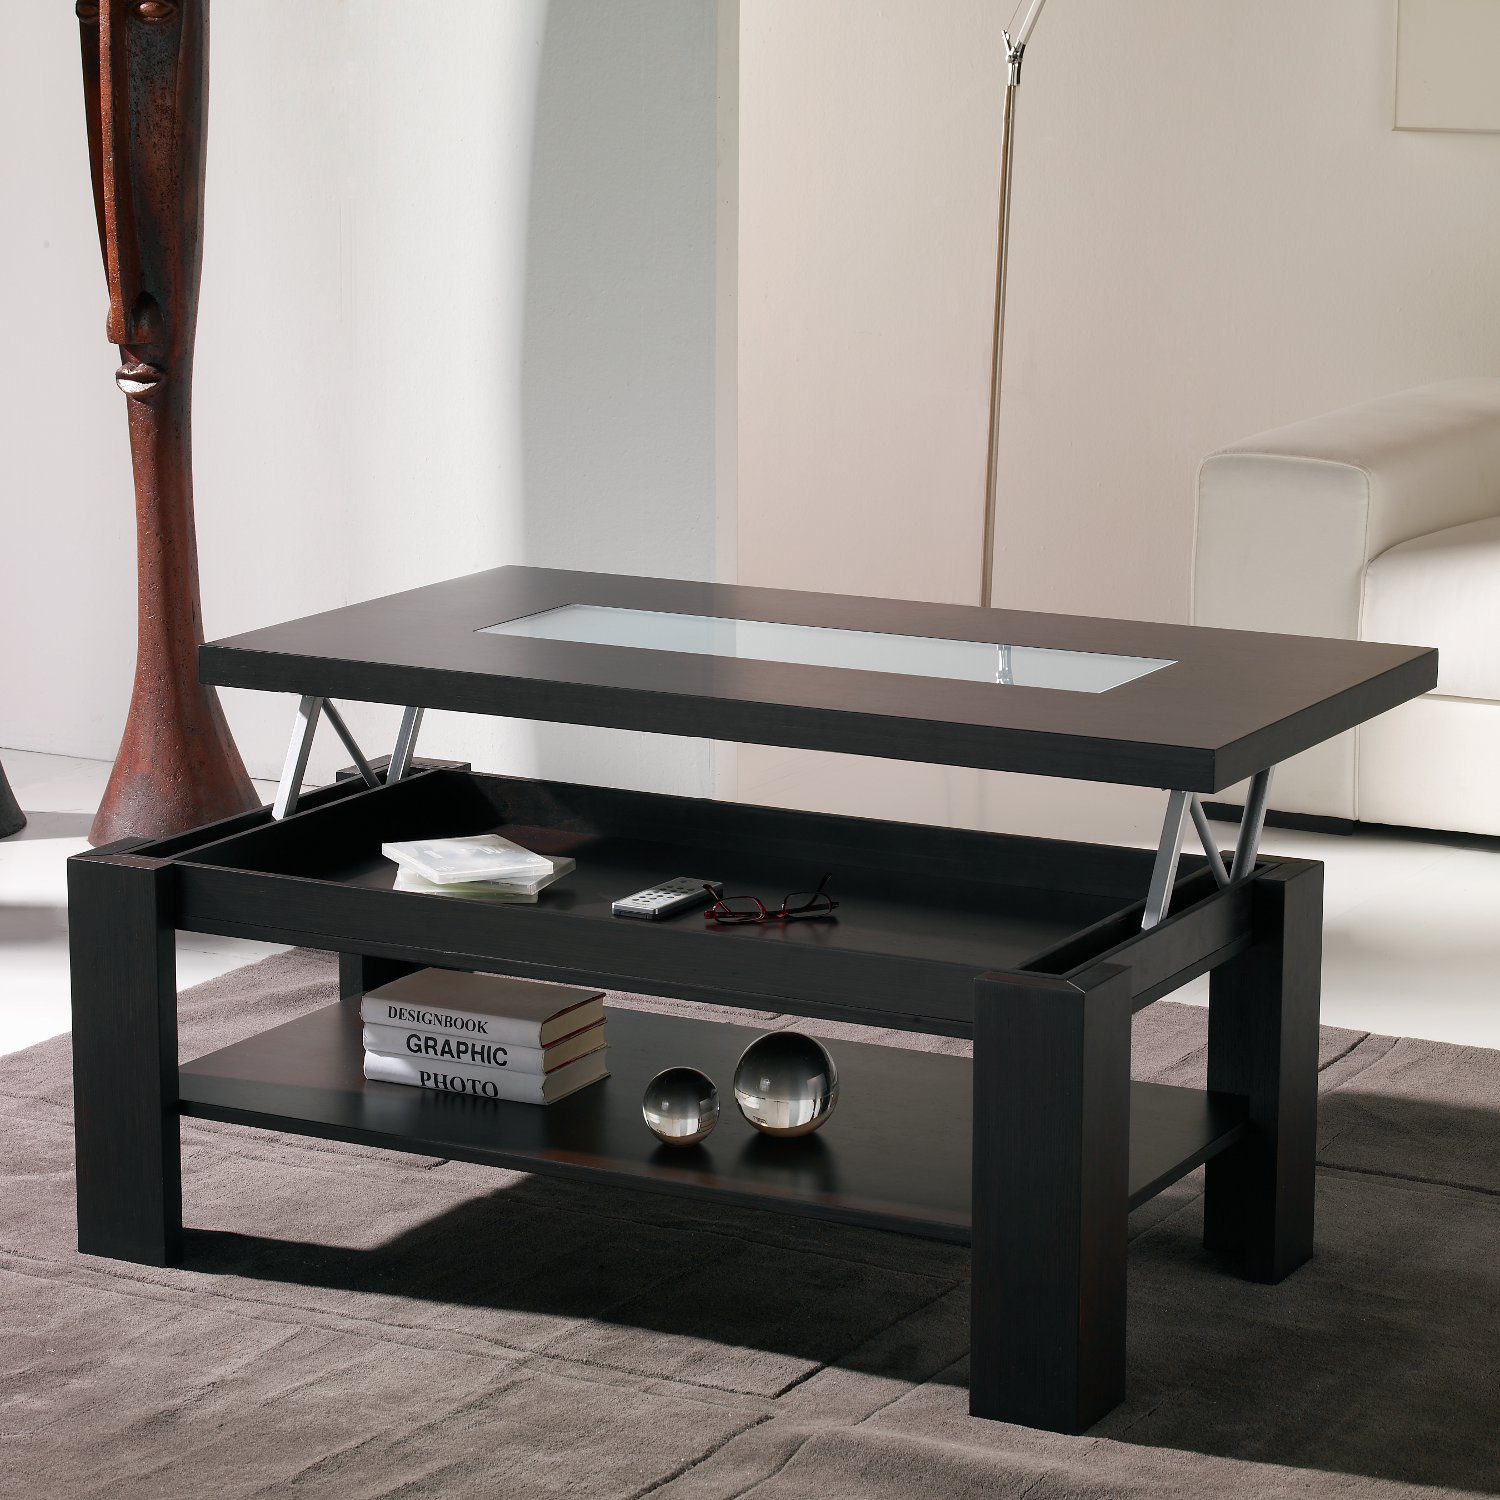 la table basse relevable r volutionne le salon d co et. Black Bedroom Furniture Sets. Home Design Ideas